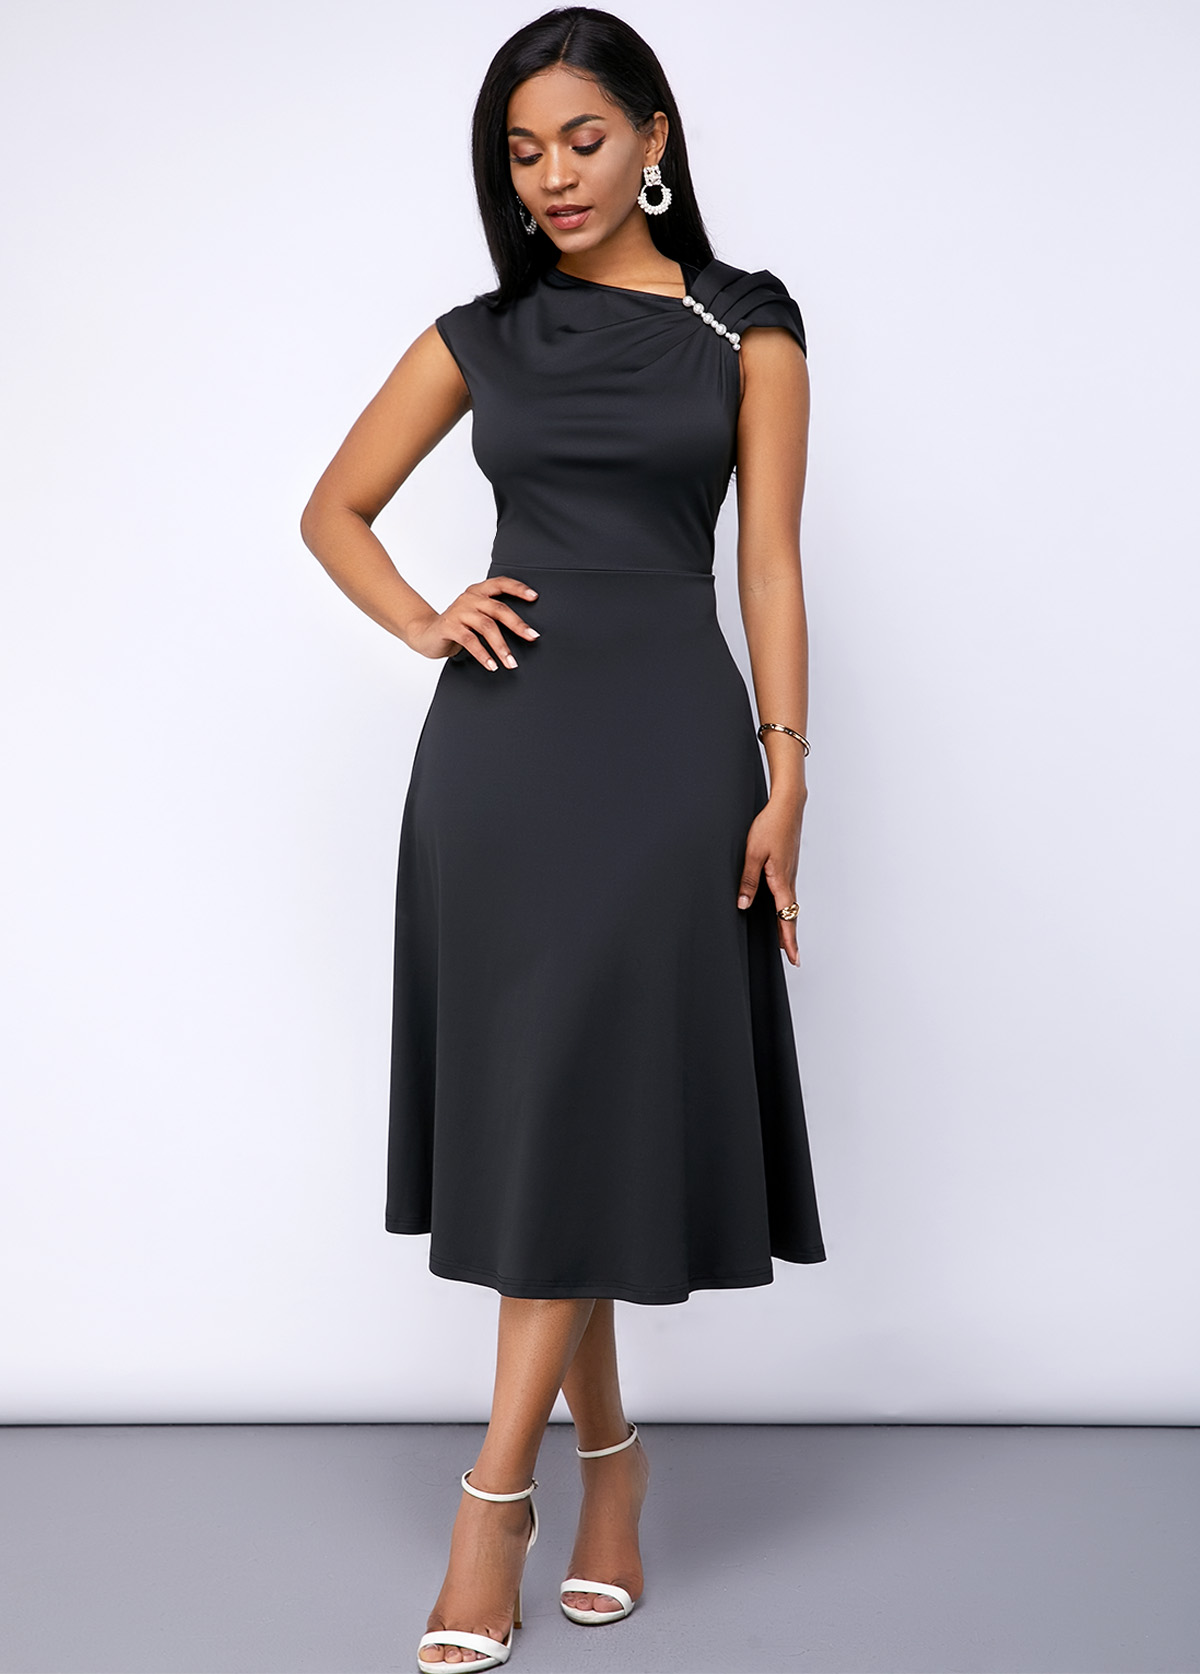 ROTITA Black Cap Sleeve Shirred Shoulder Dress